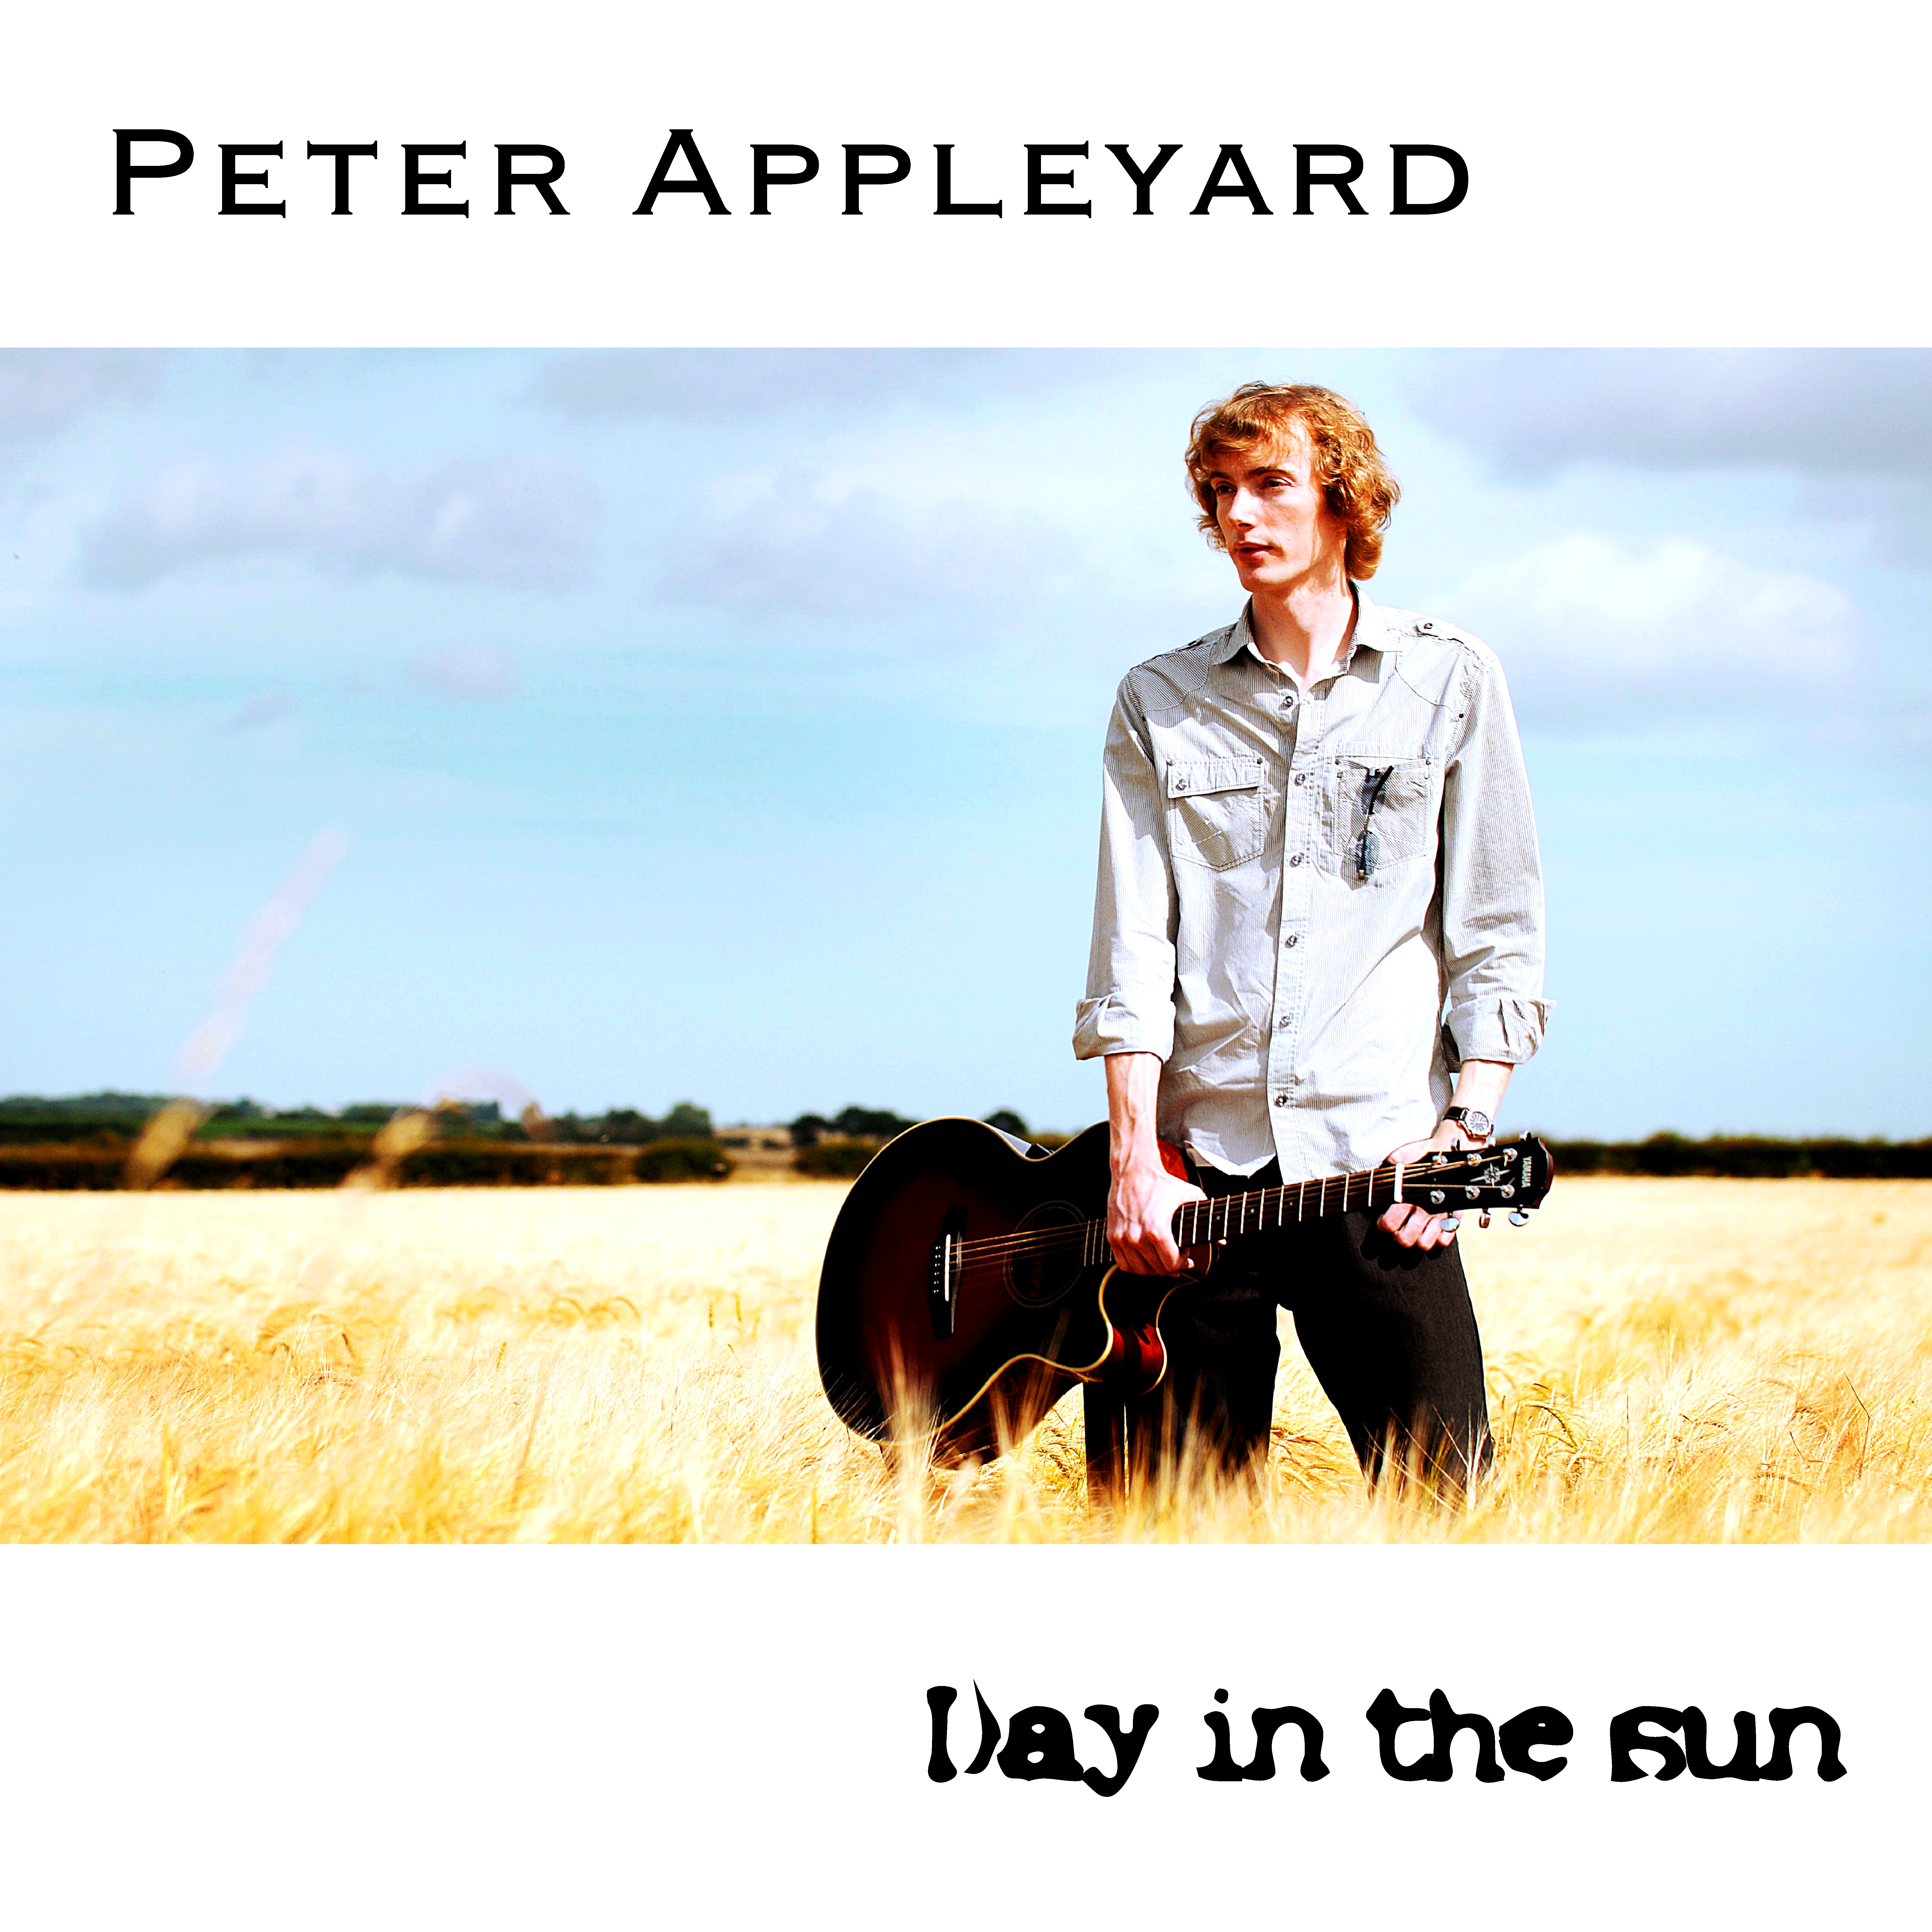 Day in the sun - Digital download - Peter Appleyard